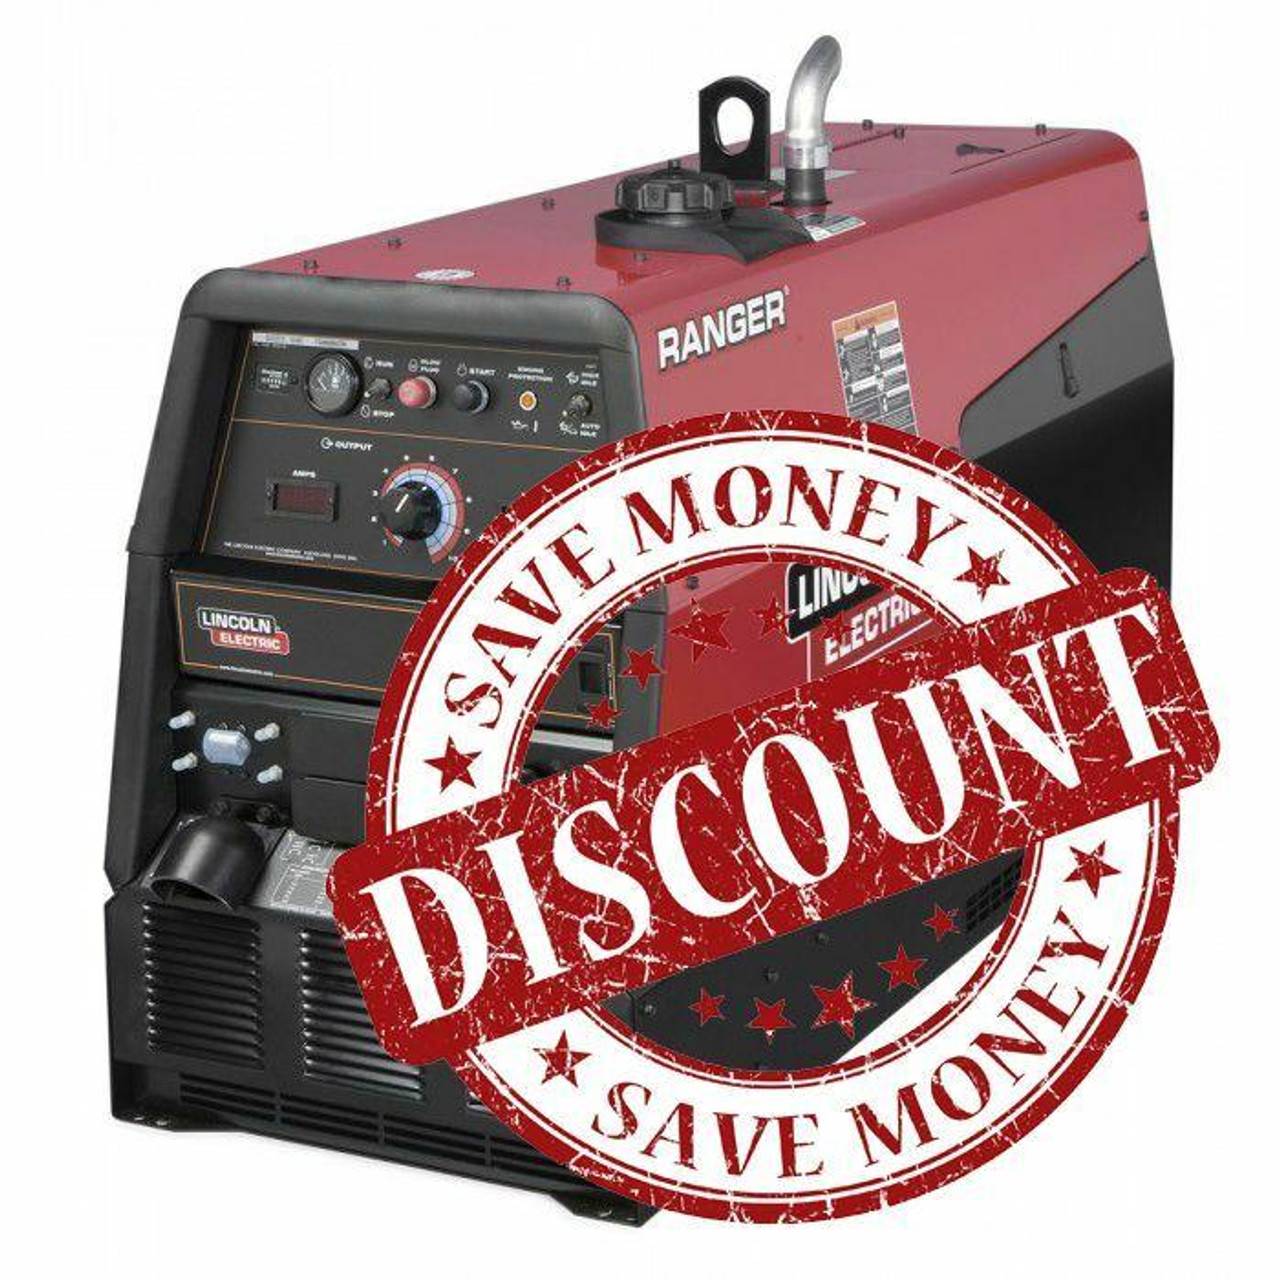 Lincoln Electric Lincoln Electric Ranger 305 D Engine Drive Welder Kubota - K1727-4 BUY NOW